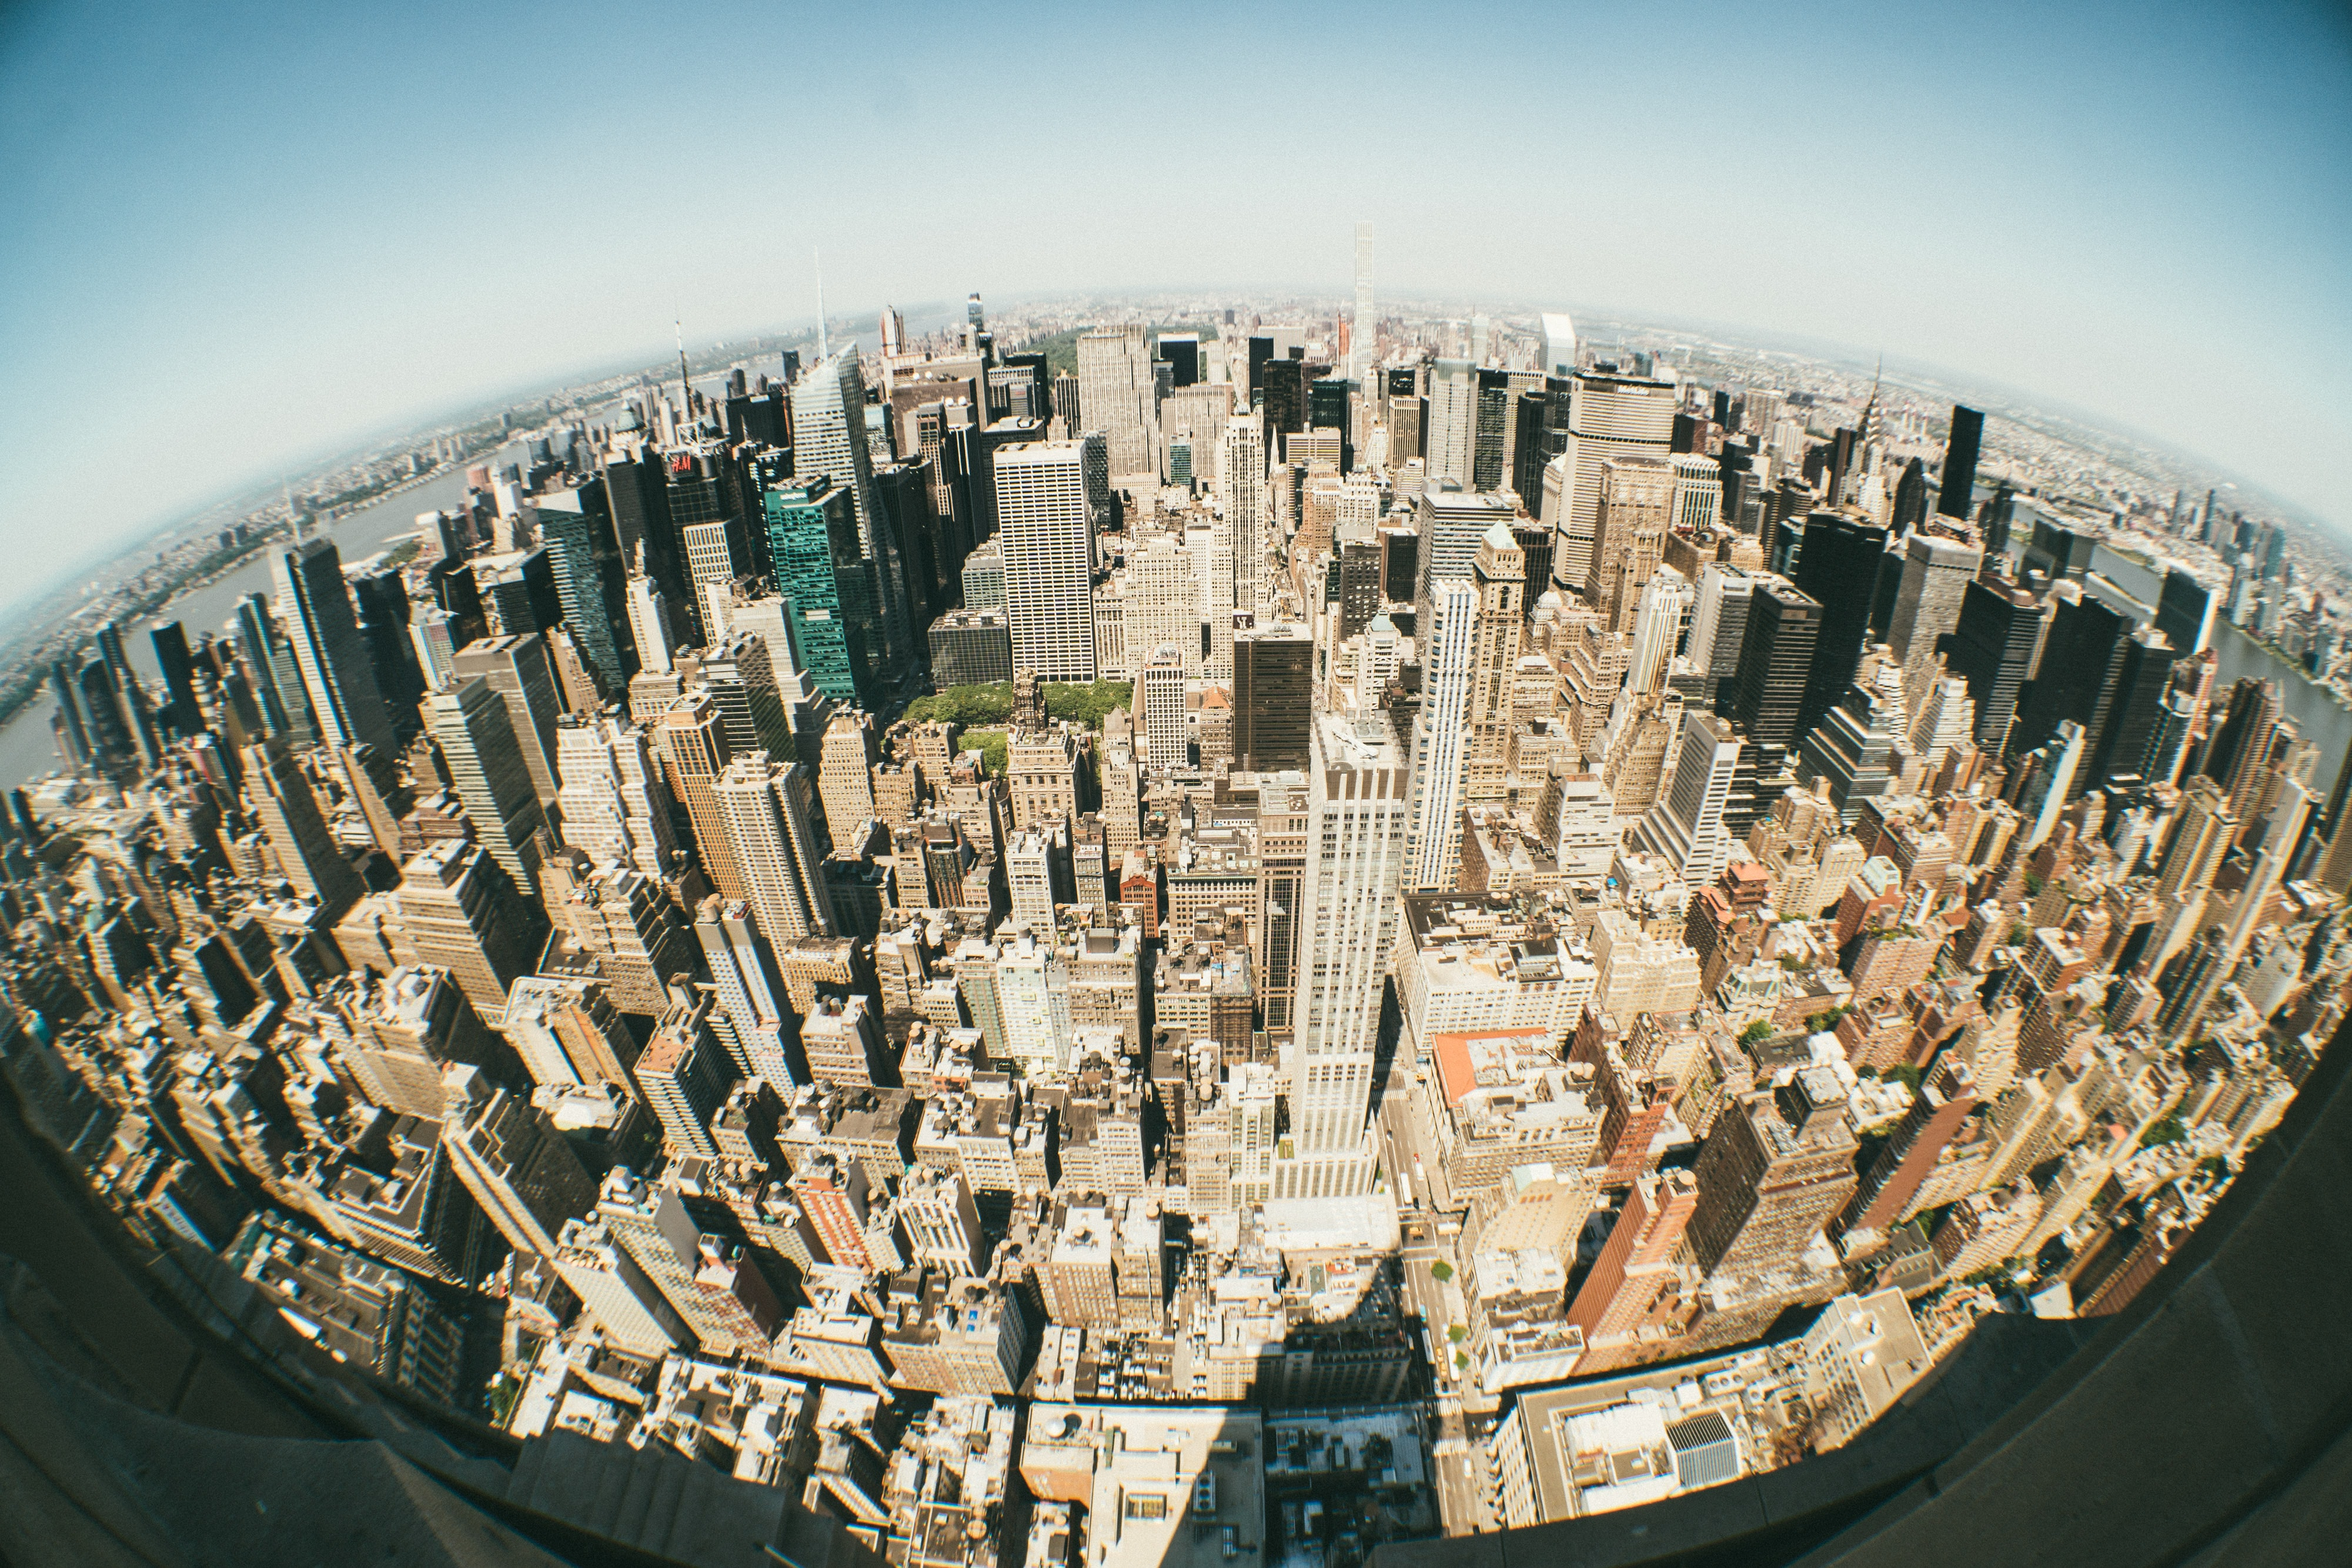 fish-eye lens photography of city buildings